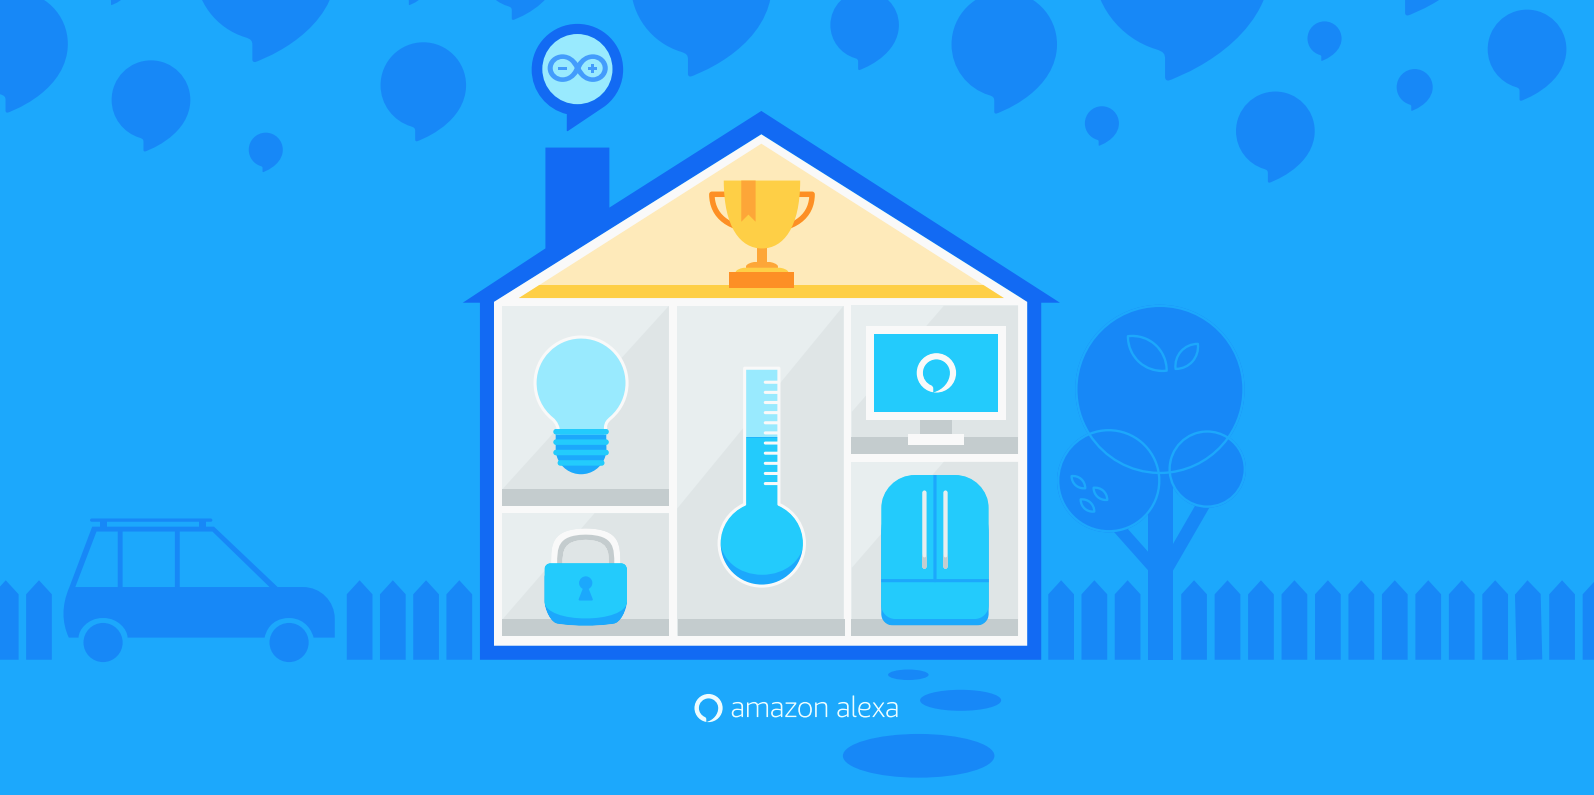 Arduino Blog 187 Create The Smart Home Gadget Of The Future With Alexa And Arduino